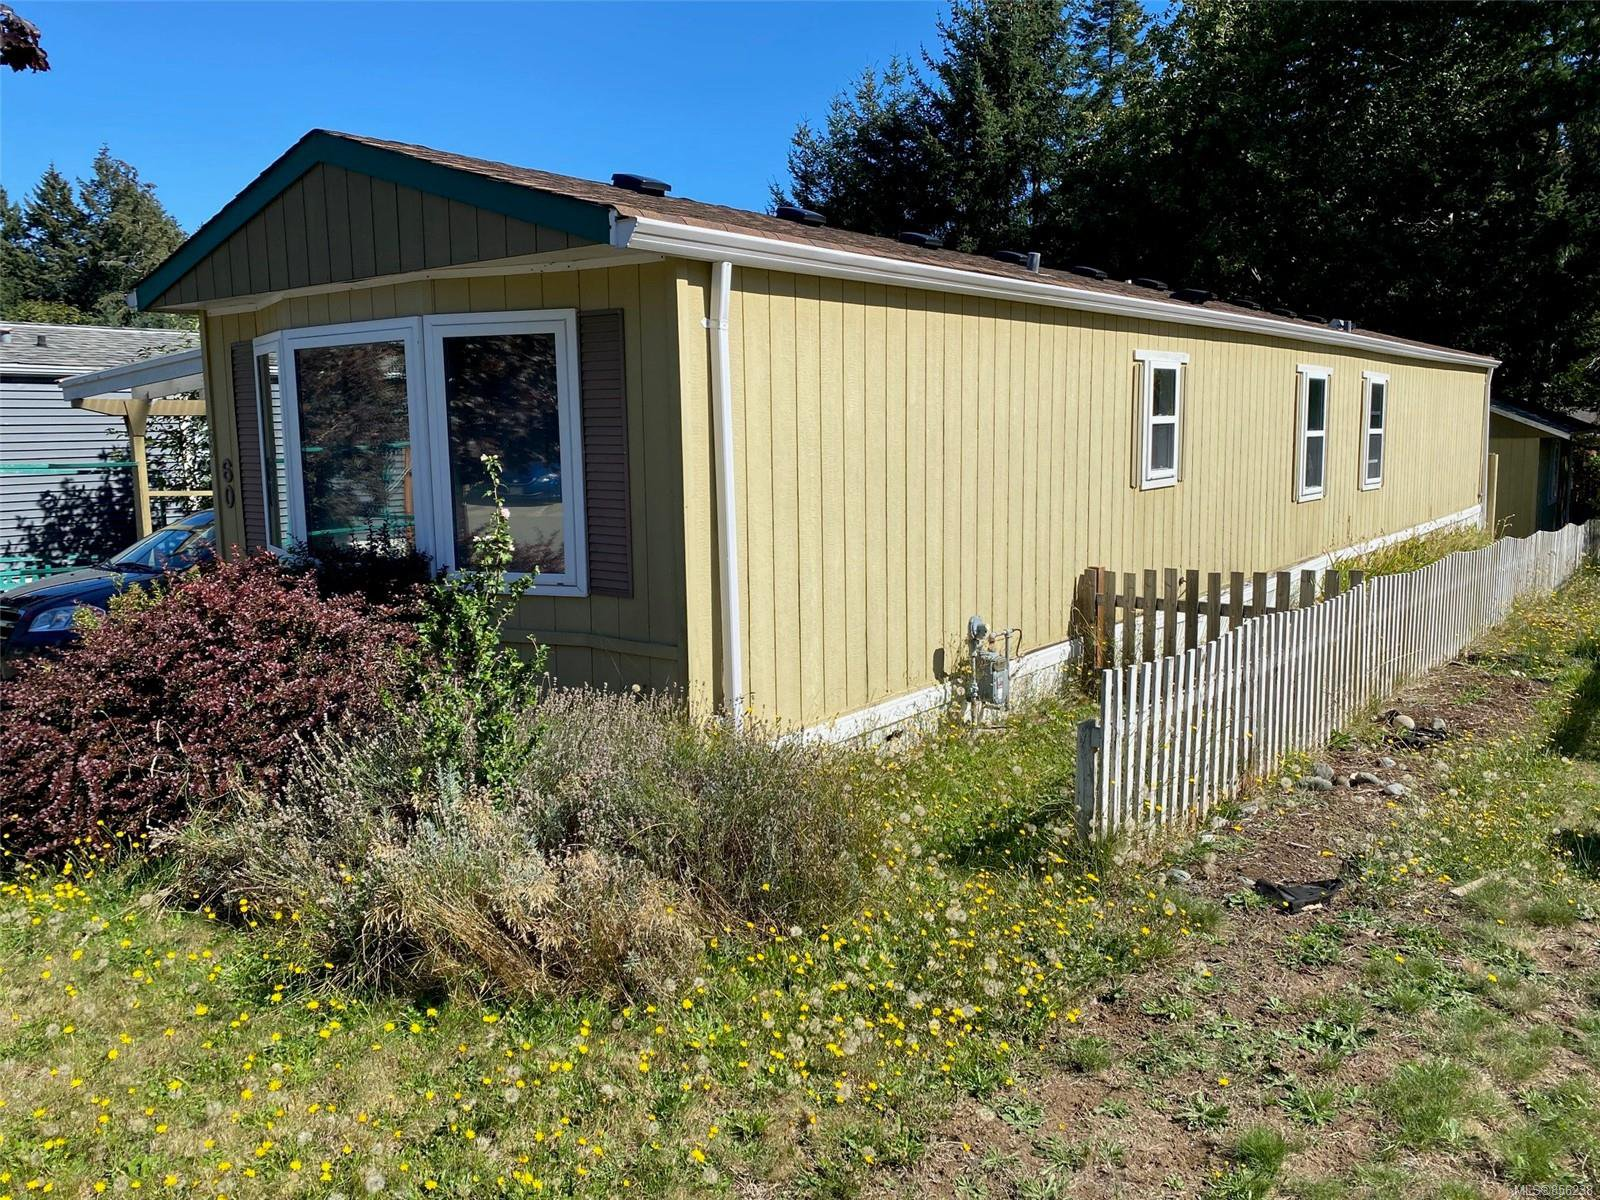 Main Photo: 60 1901 E Ryan Rd in : CV Comox Peninsula Manufactured Home for sale (Comox Valley)  : MLS®# 856238